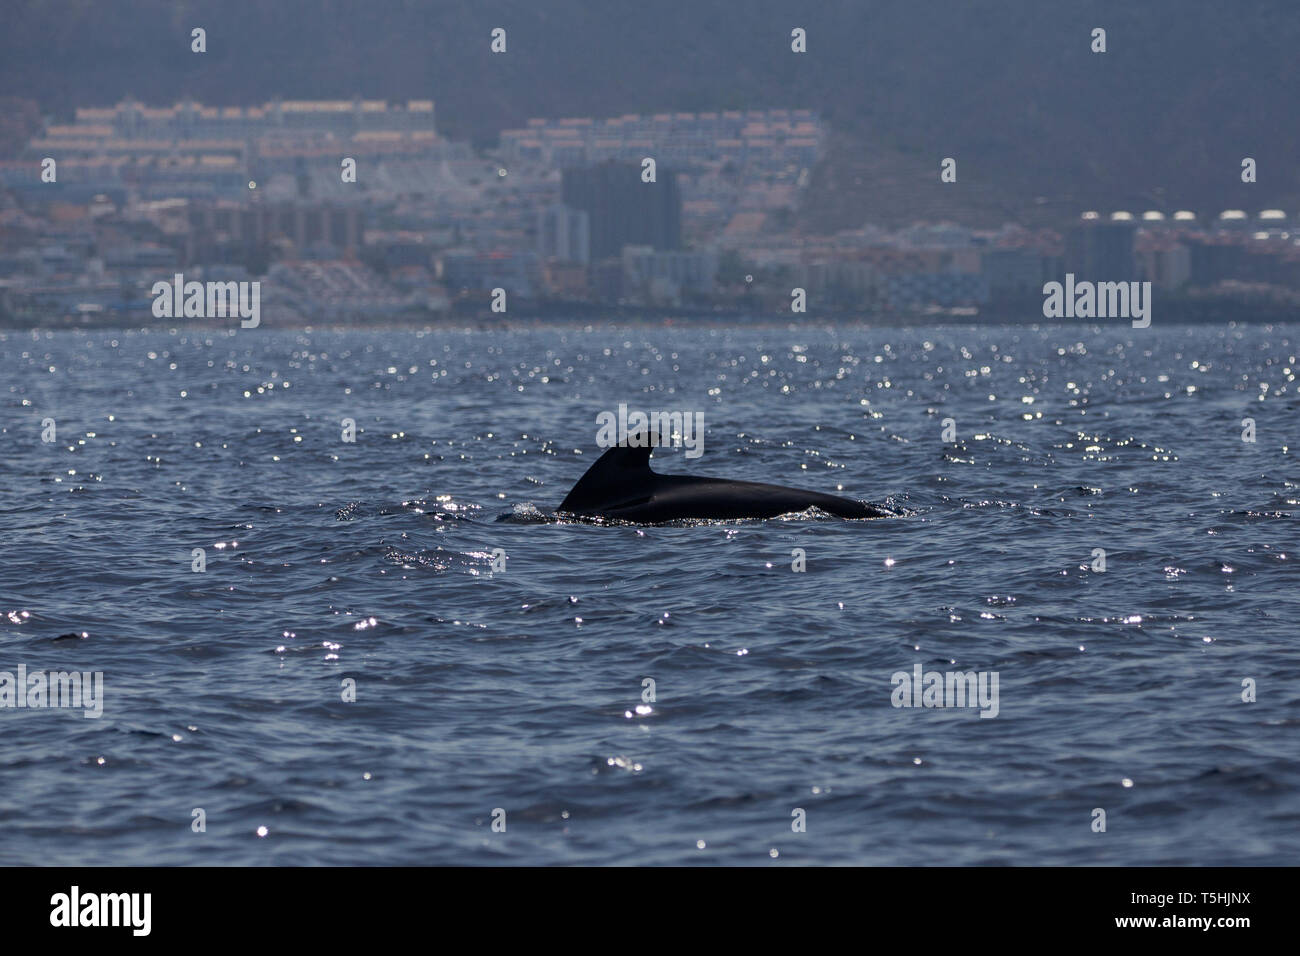 Bryde's whale (balaenoptera edeni) in Adeje Coast (south of Tenerife), Canary islands, Spain. - Stock Image